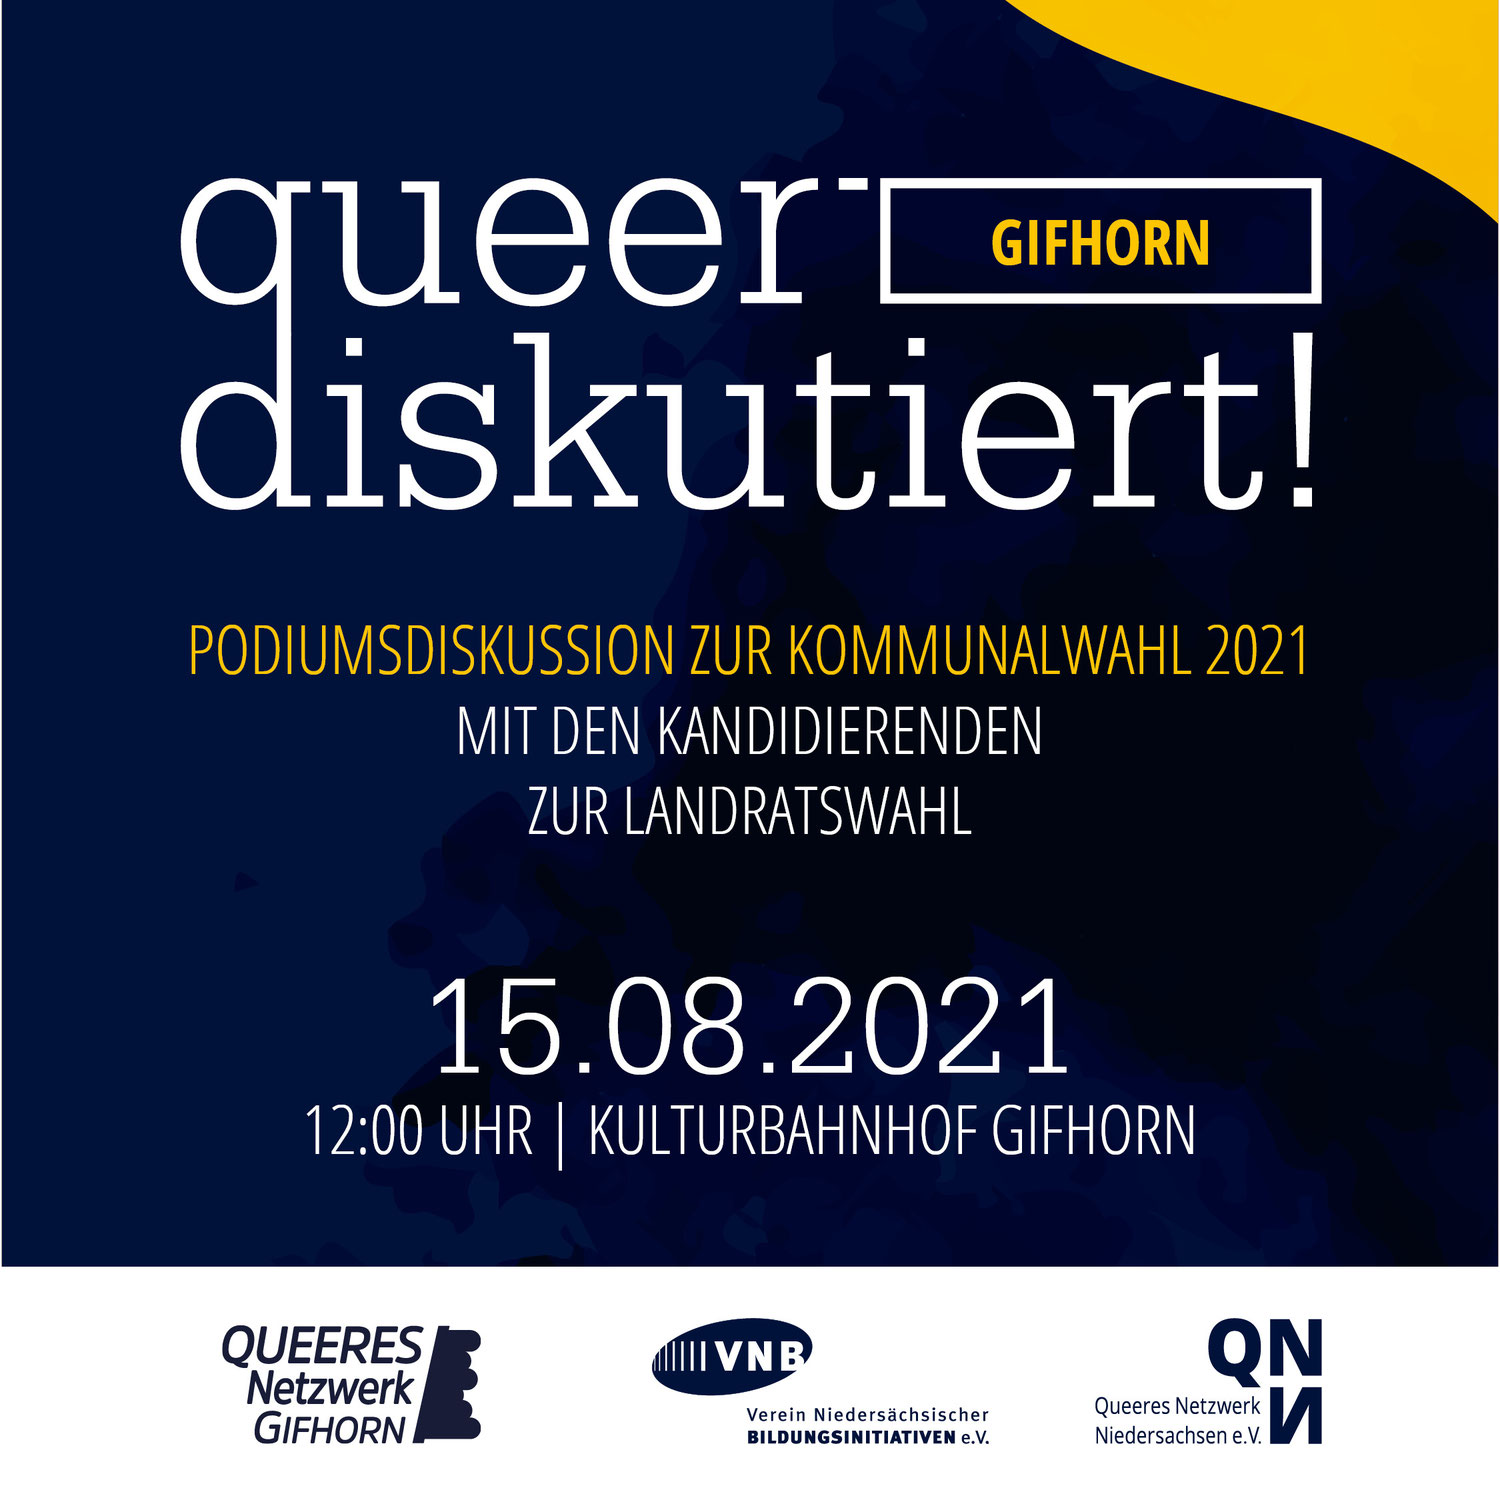 Podiumsdiskussion - Queer diskutiert: Gifhorn!